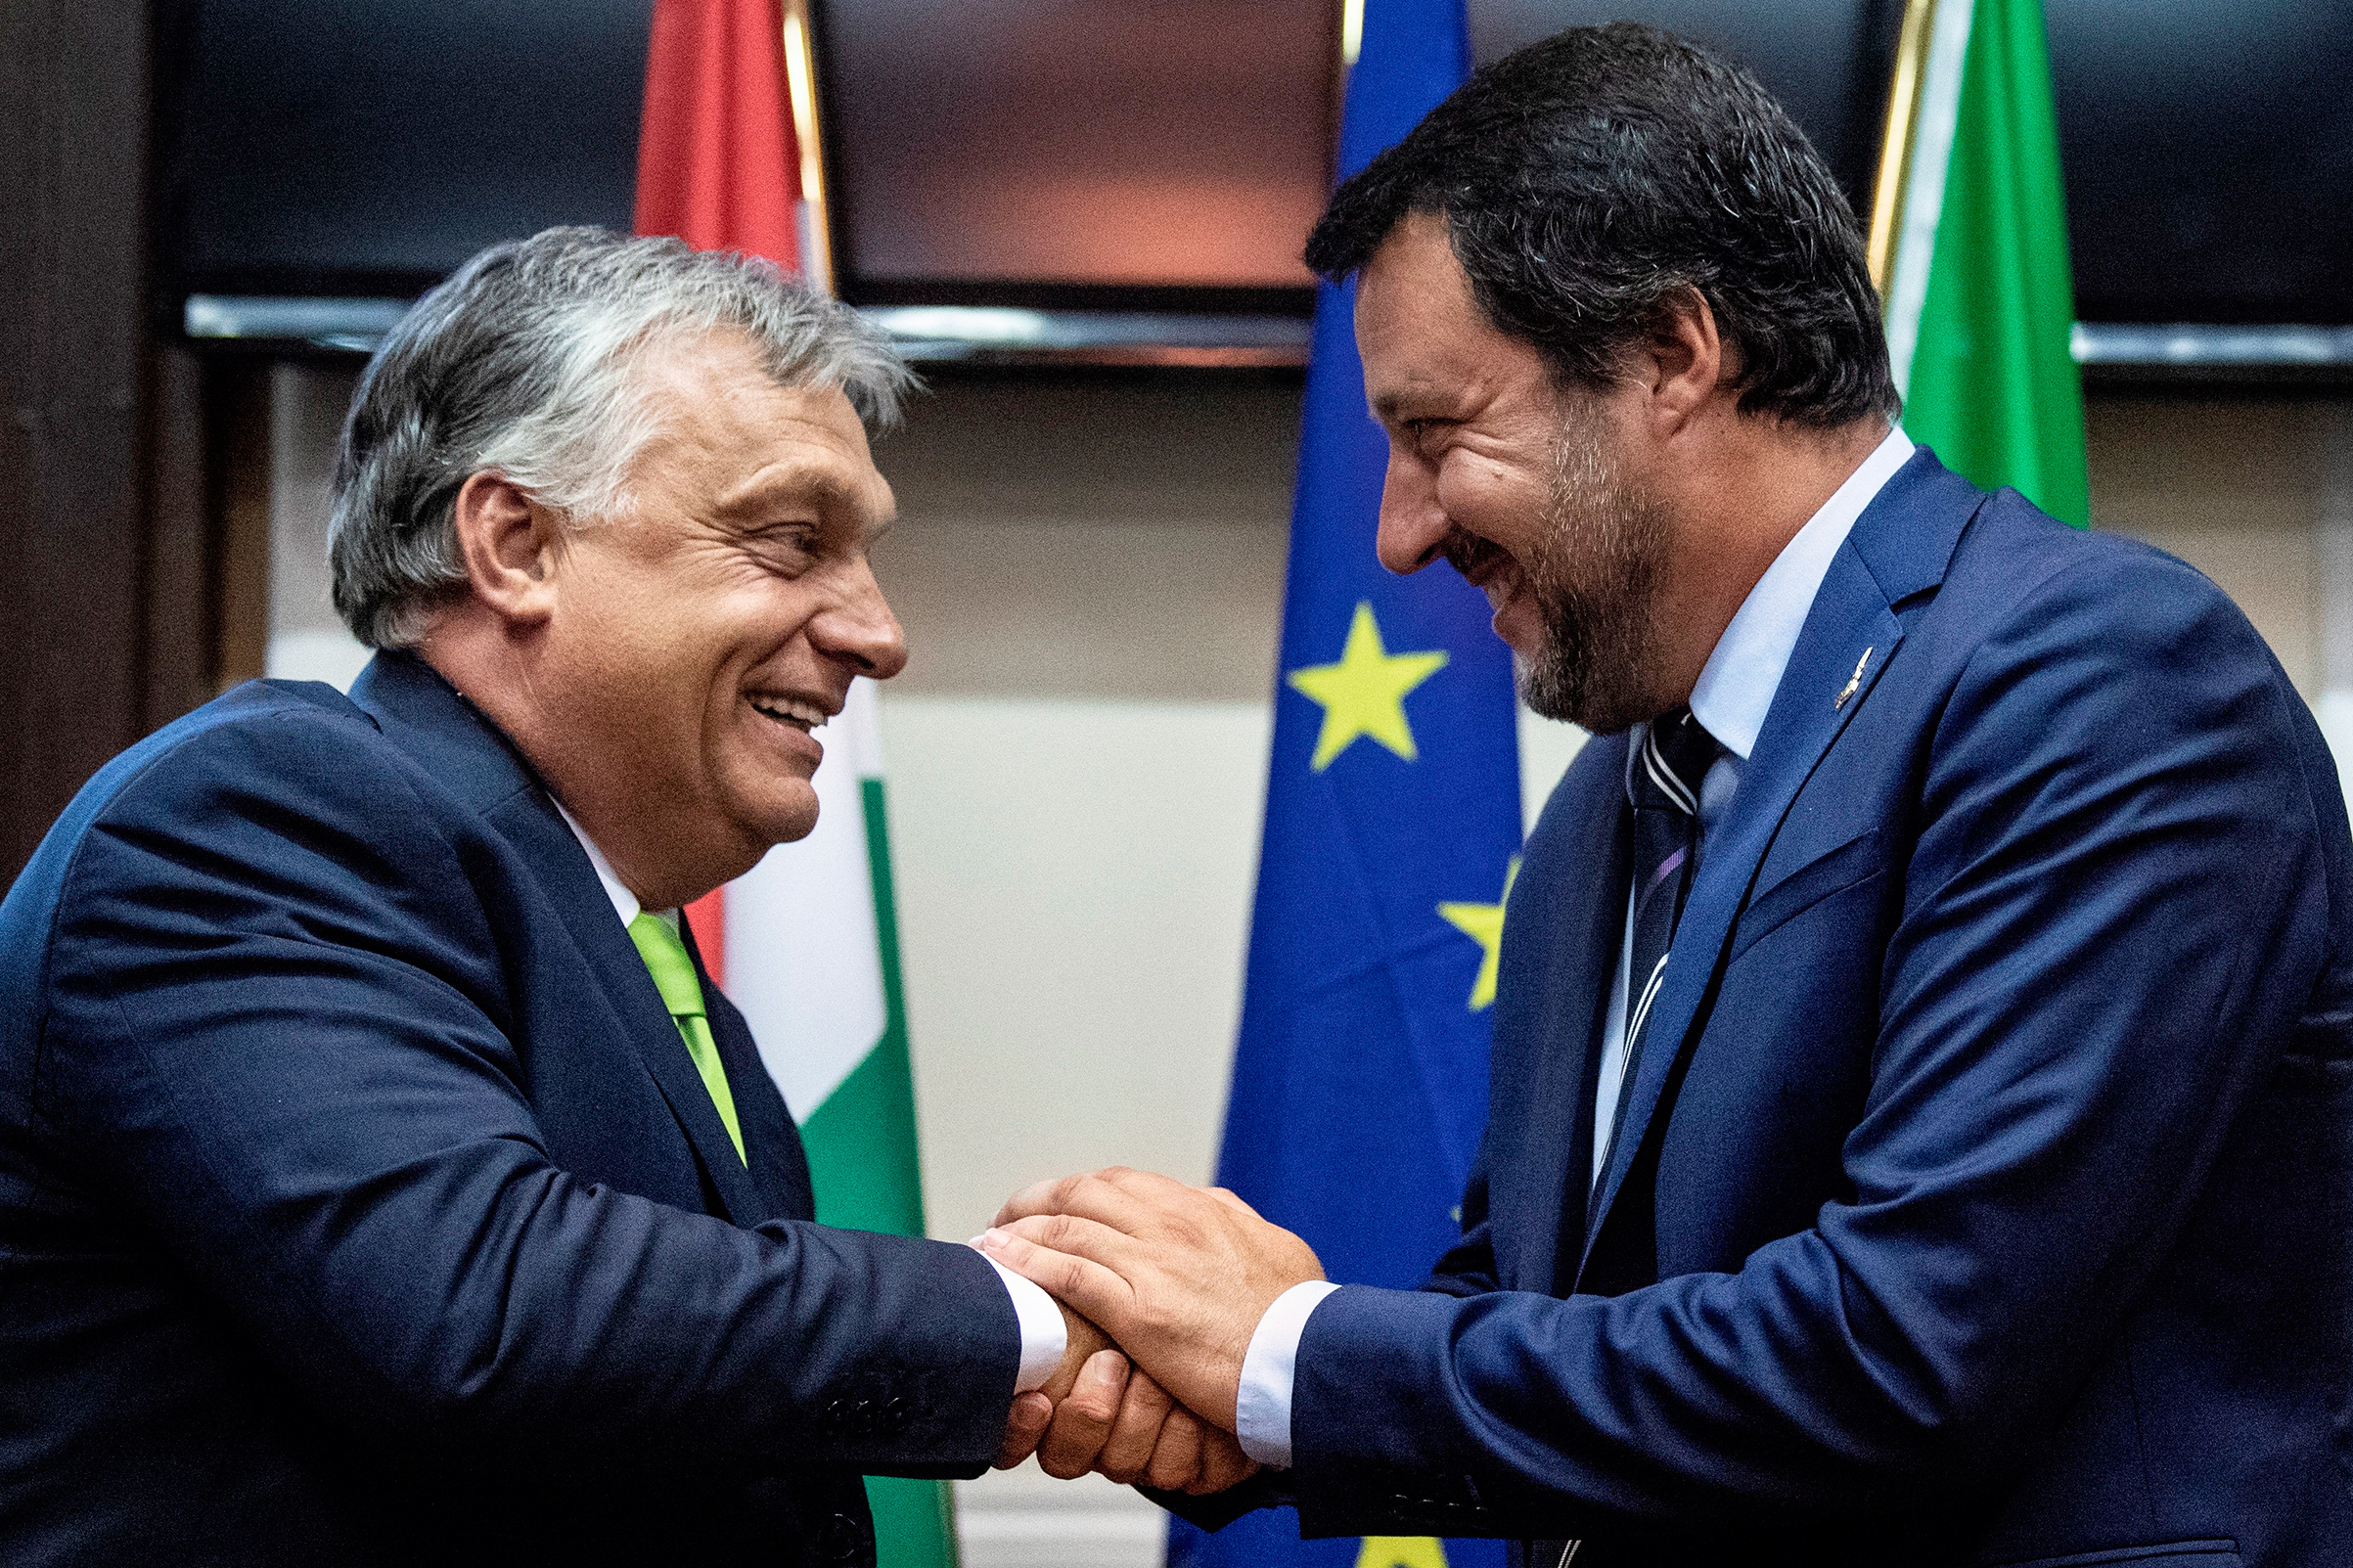 Italy's Salvini, right, greets Hungary's Orban in Milan